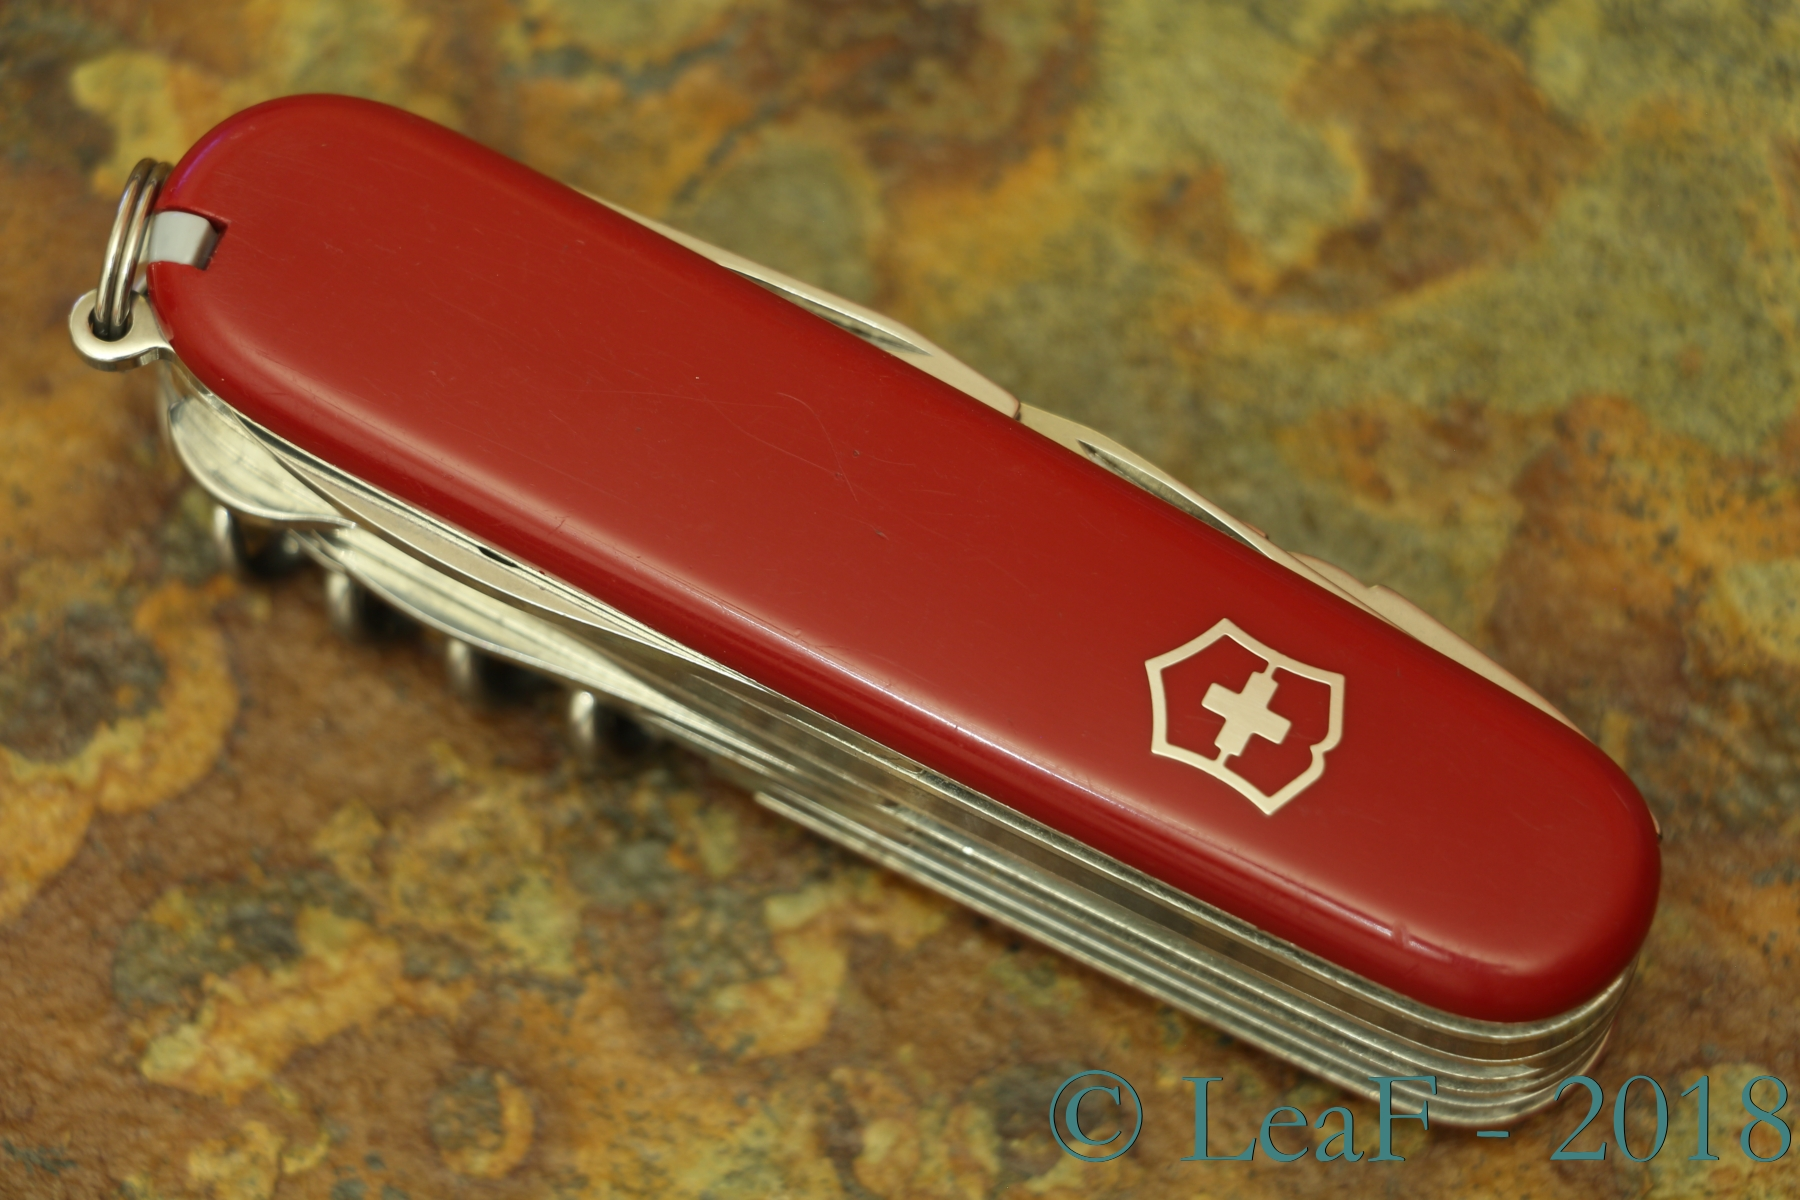 713 Handyman Leaf S Victorinox Knives Collection